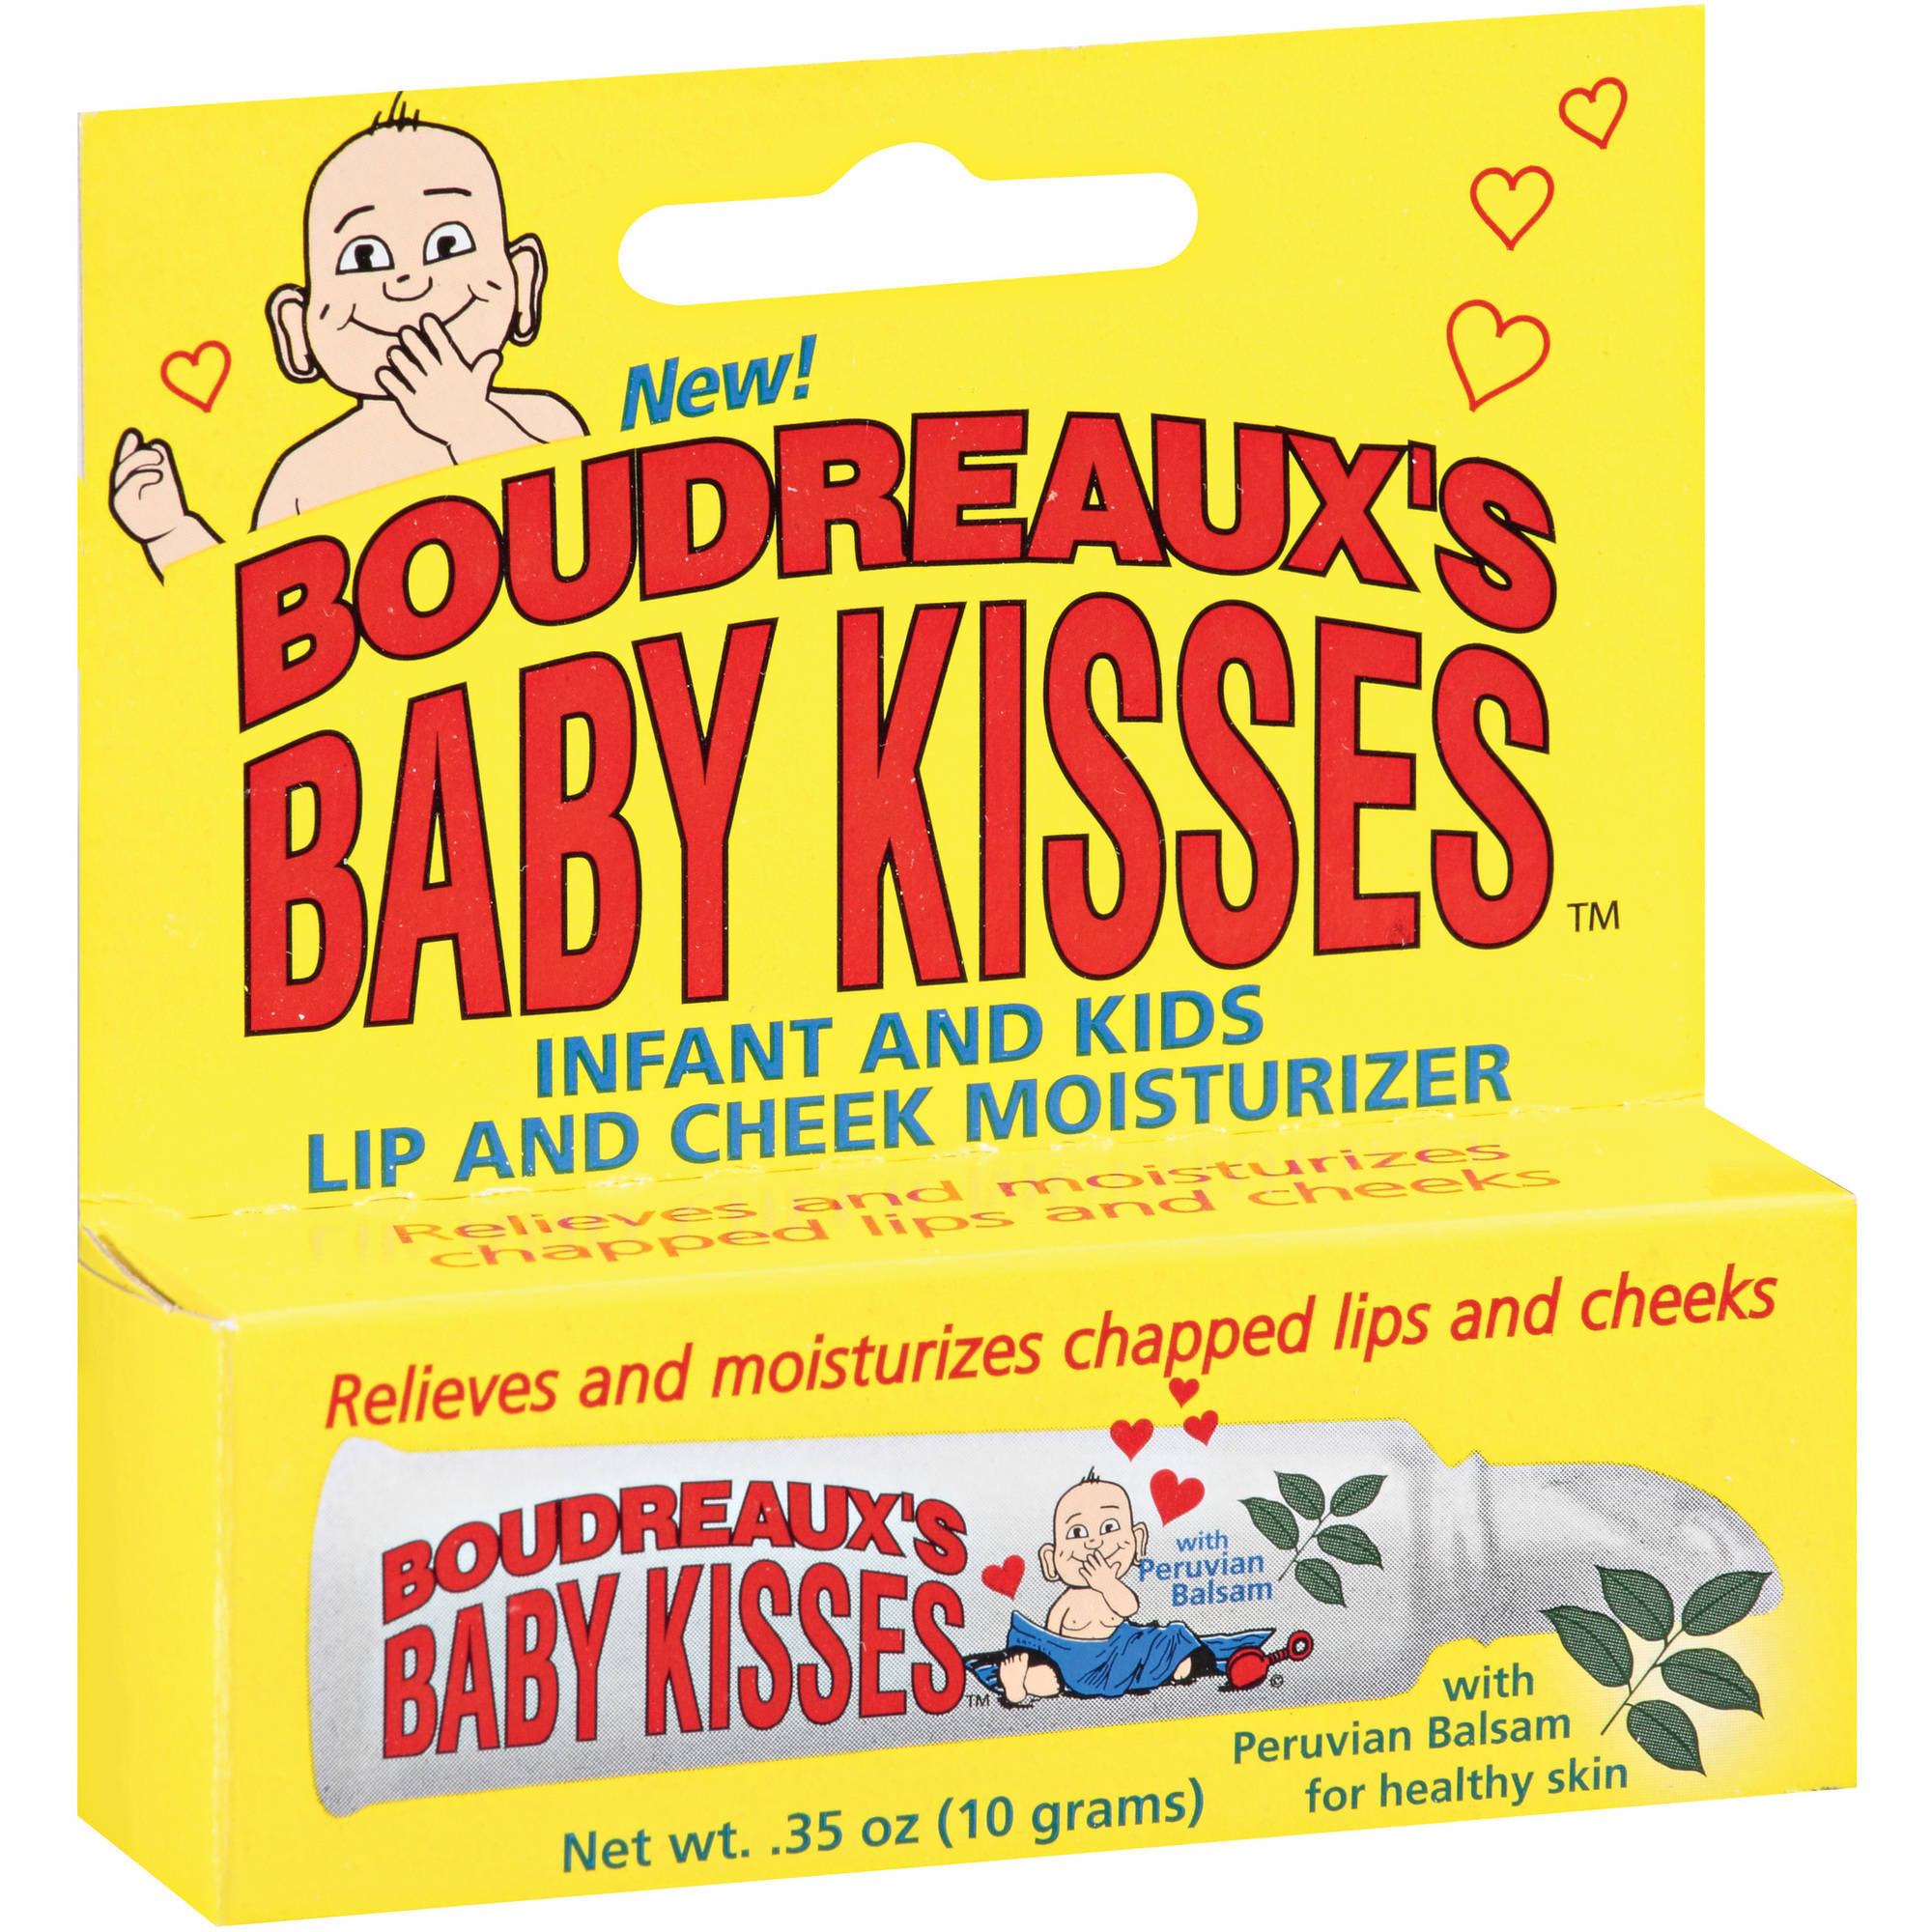 Boudreauxs Baby Kisses Lip And Cheek Moisturizer For Infant And Kids - 10 Gm